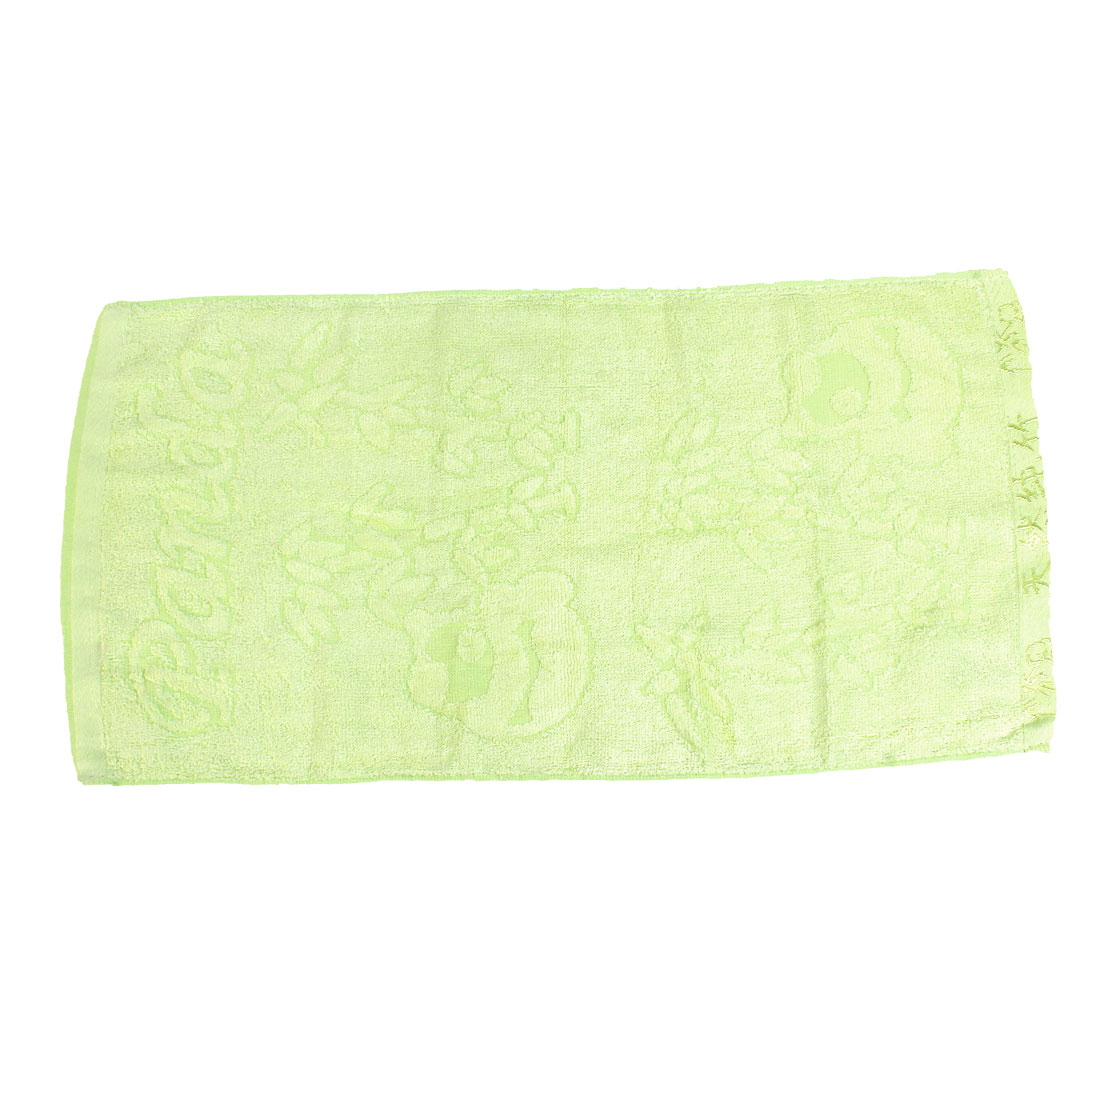 Home Bathroom Bamboo Pattern Face Hand Terry Towel Light Green